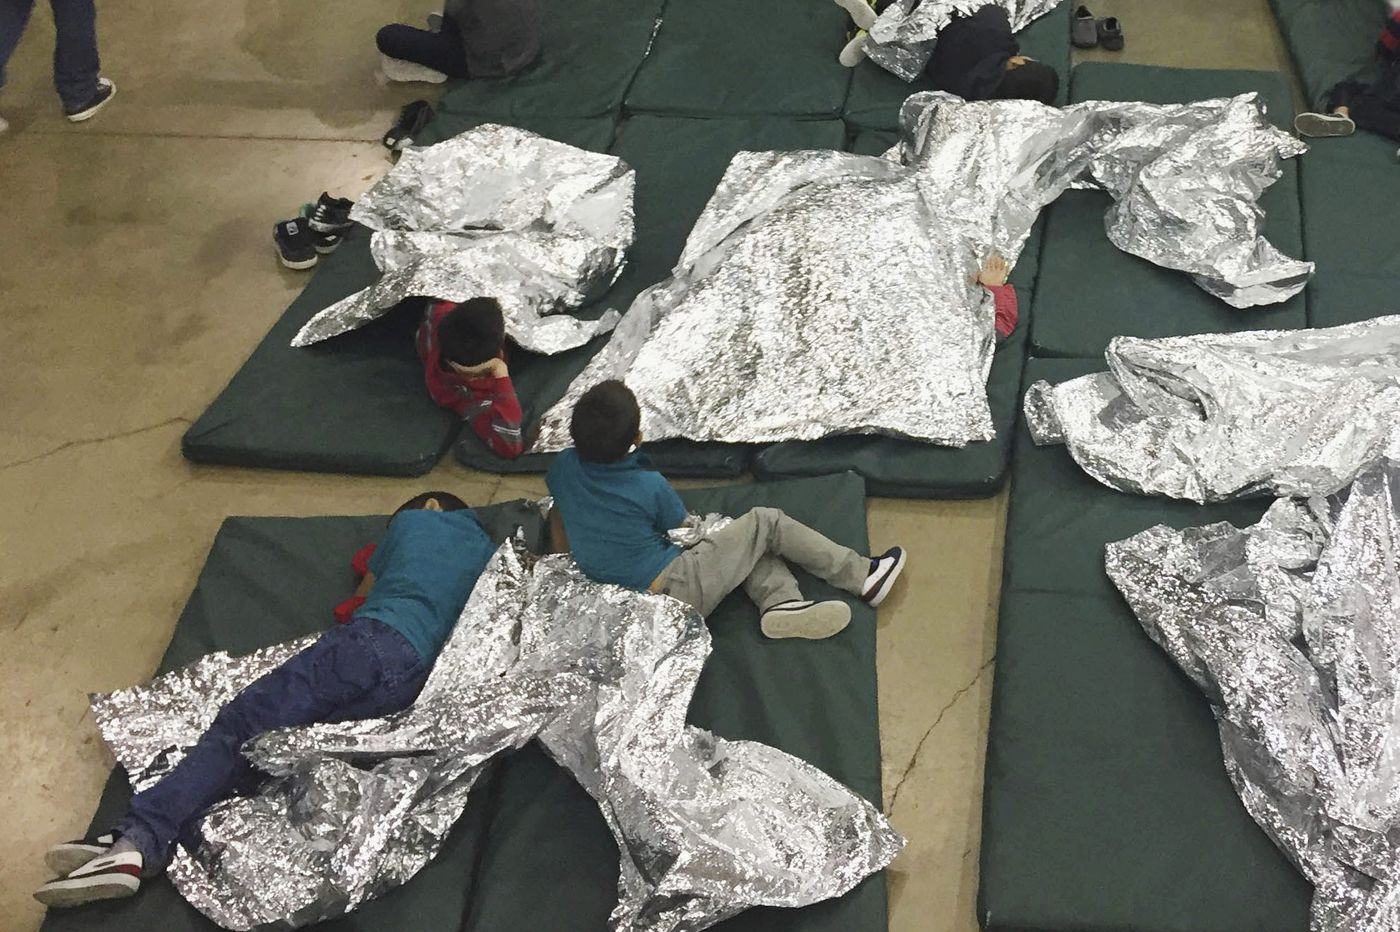 Two-thirds of Americans oppose Trump's family-separation policy | Poll